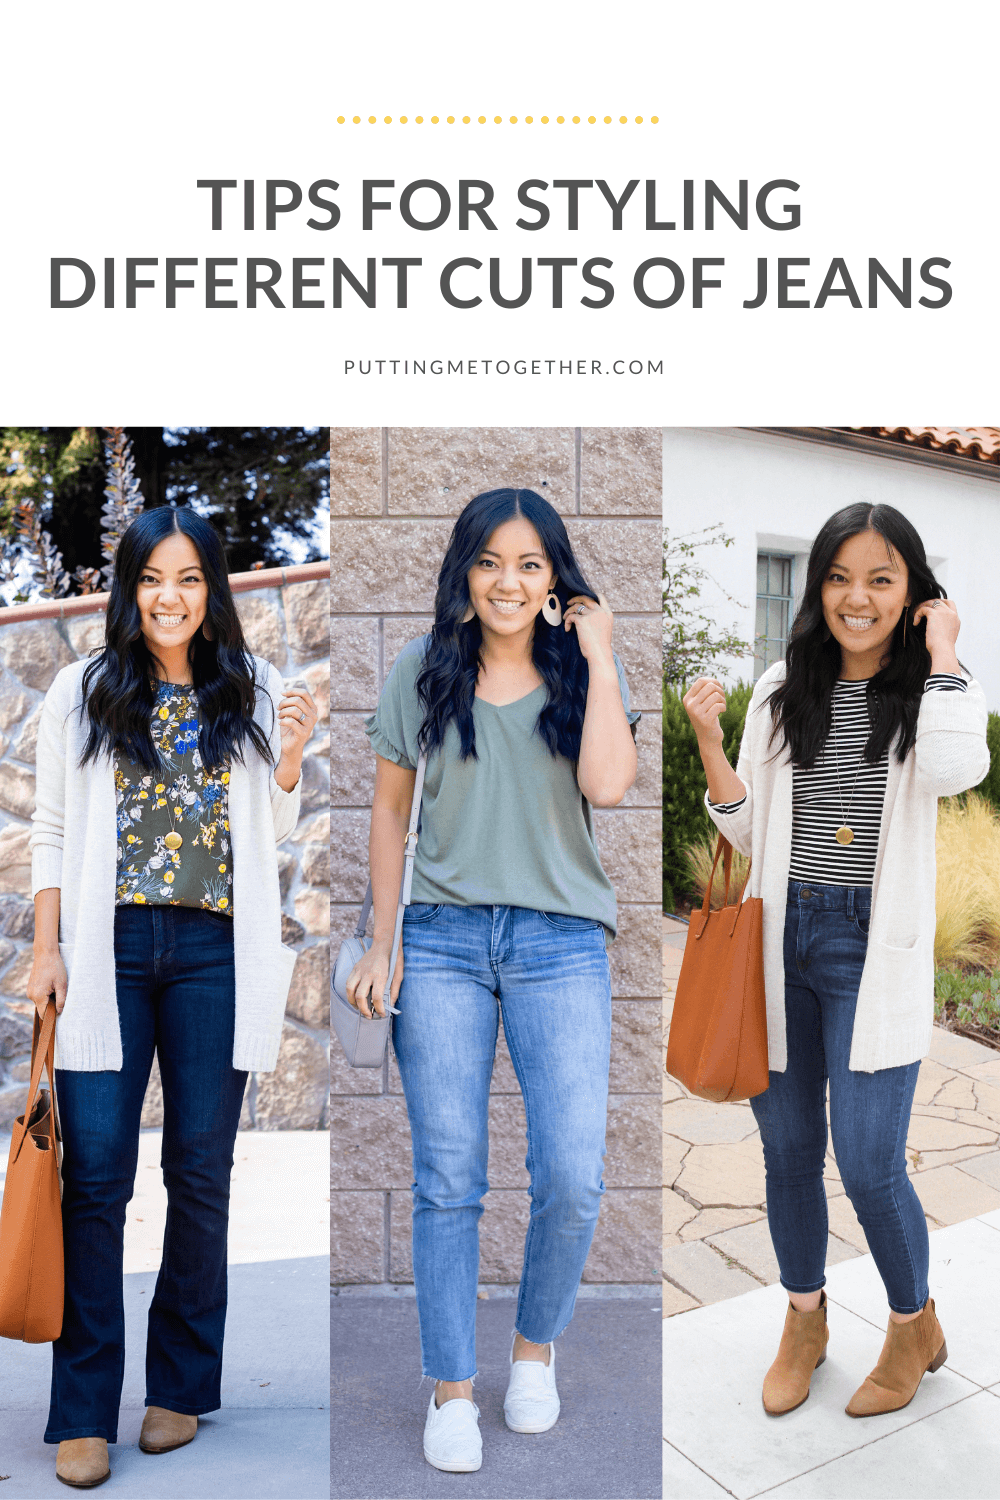 Tips to Style Different Cuts of Jeans